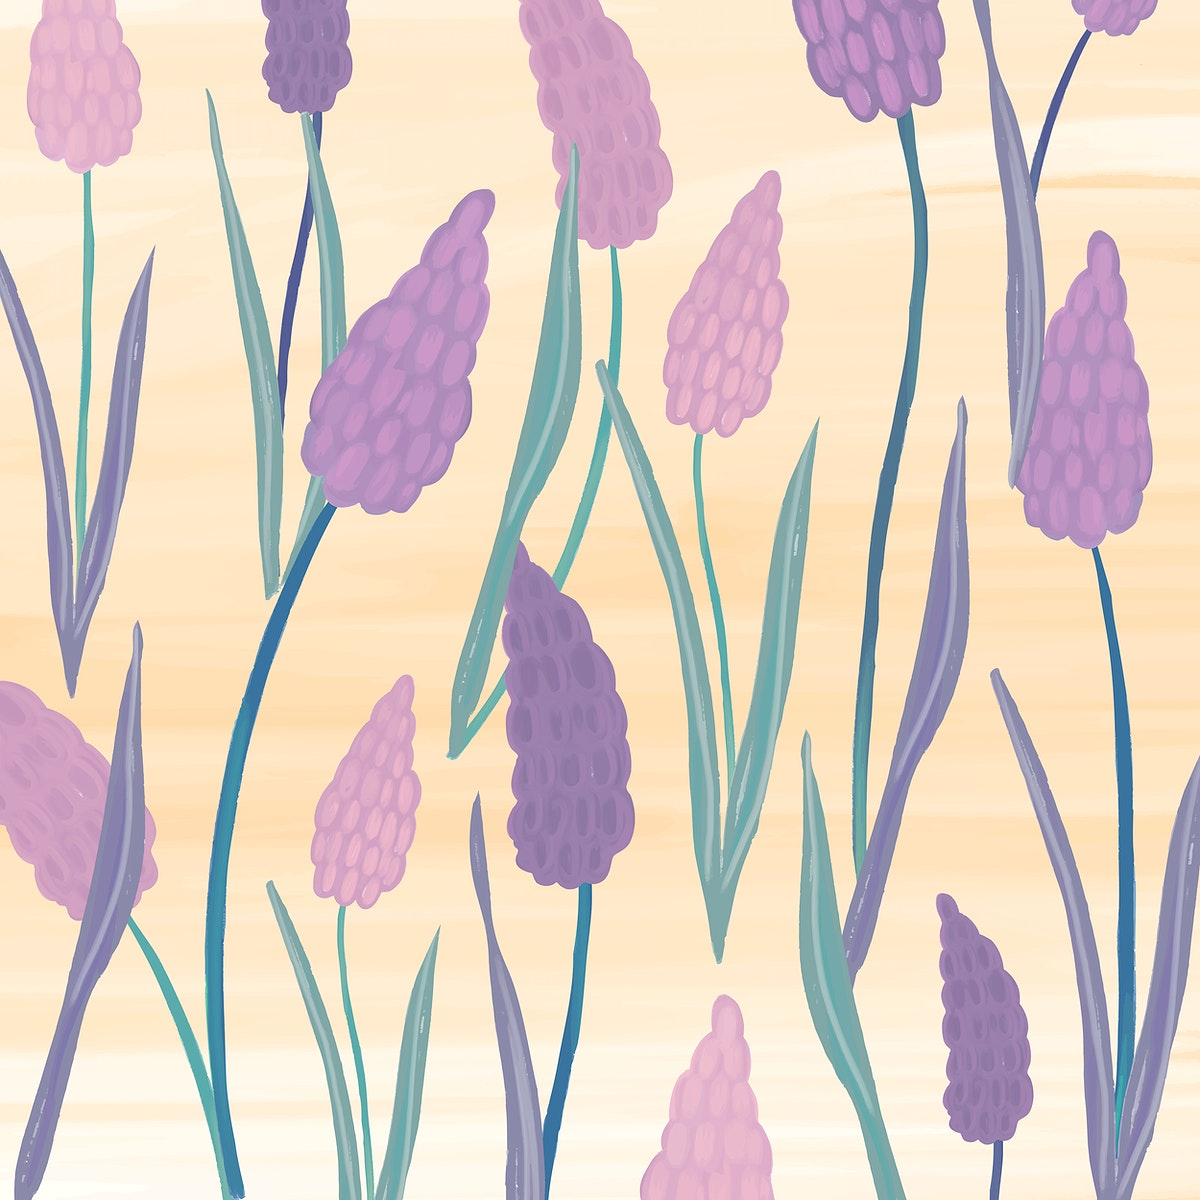 Hand drawn grape hyacinth patterned background vector